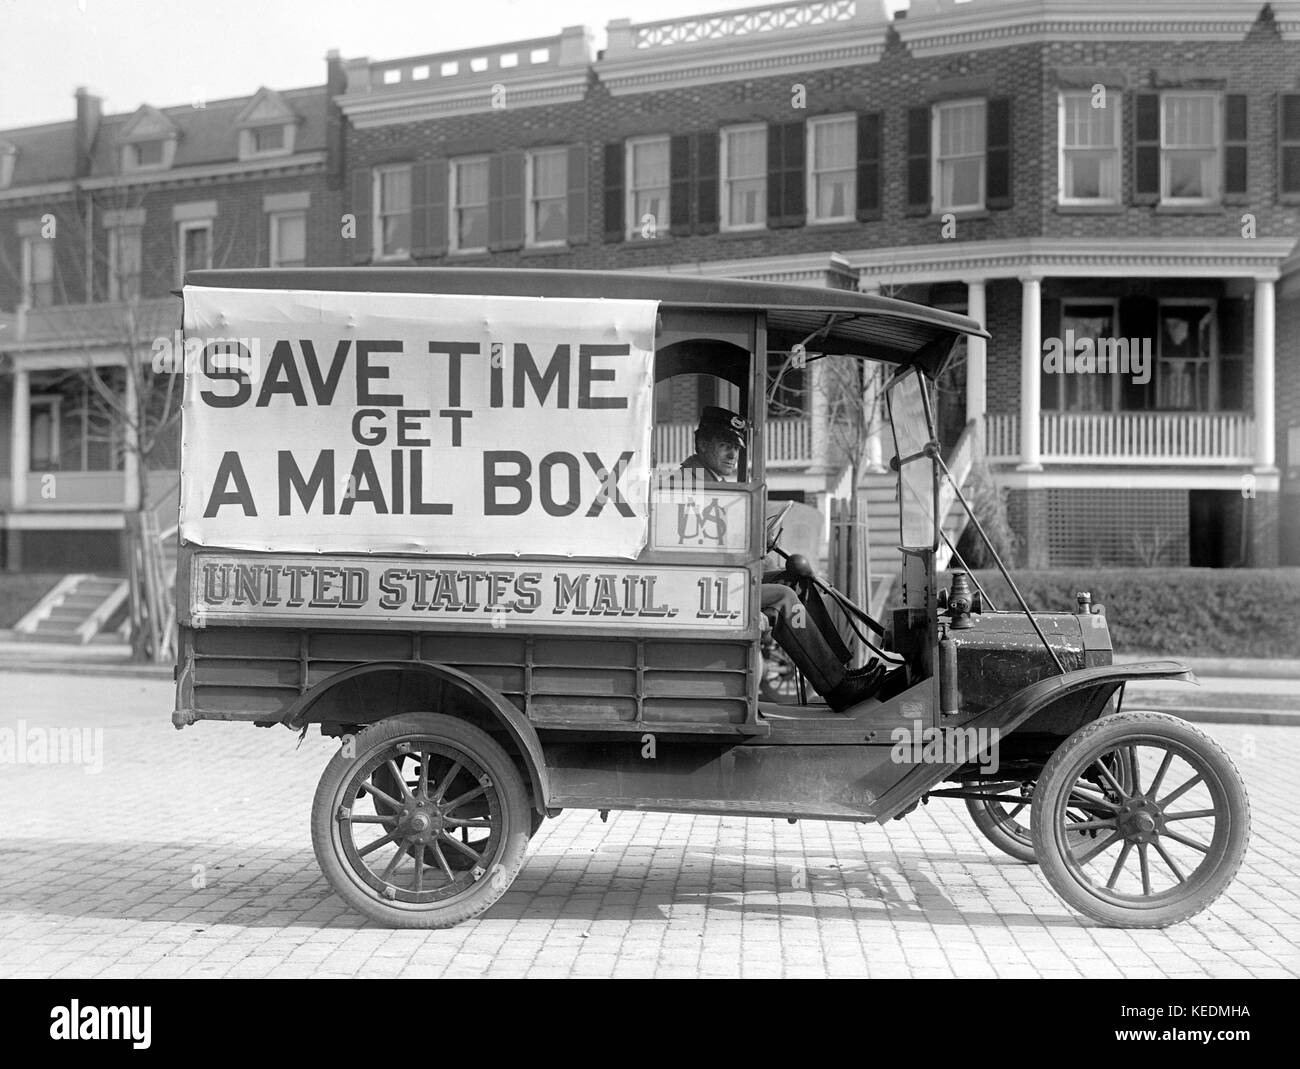 Post Office Mail Wagons 'Save Time Get a Mail Box', Washington DC, USA, Harris & Ewing, 1916 - Stock Image